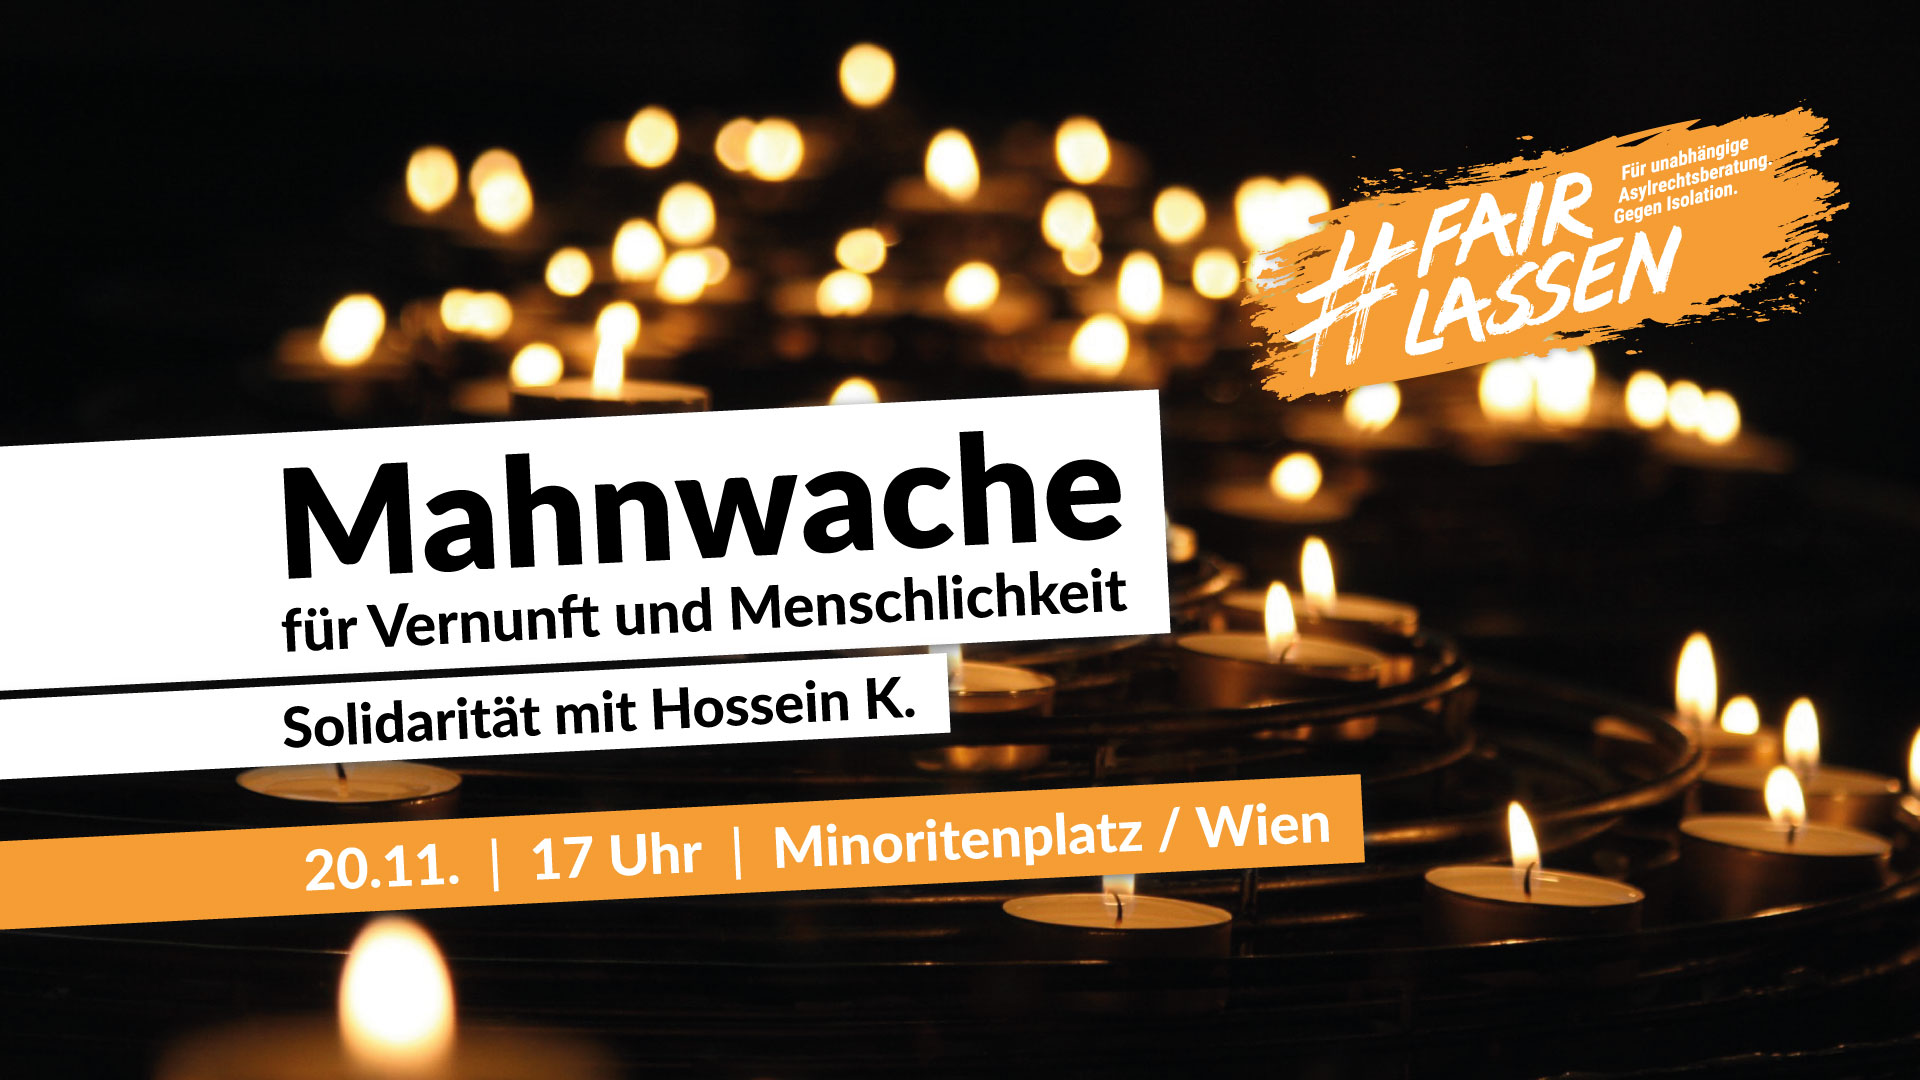 https://www.fairlassen.at/wp-content/uploads/2019/11/FB_Event_Mahnwache.jpg